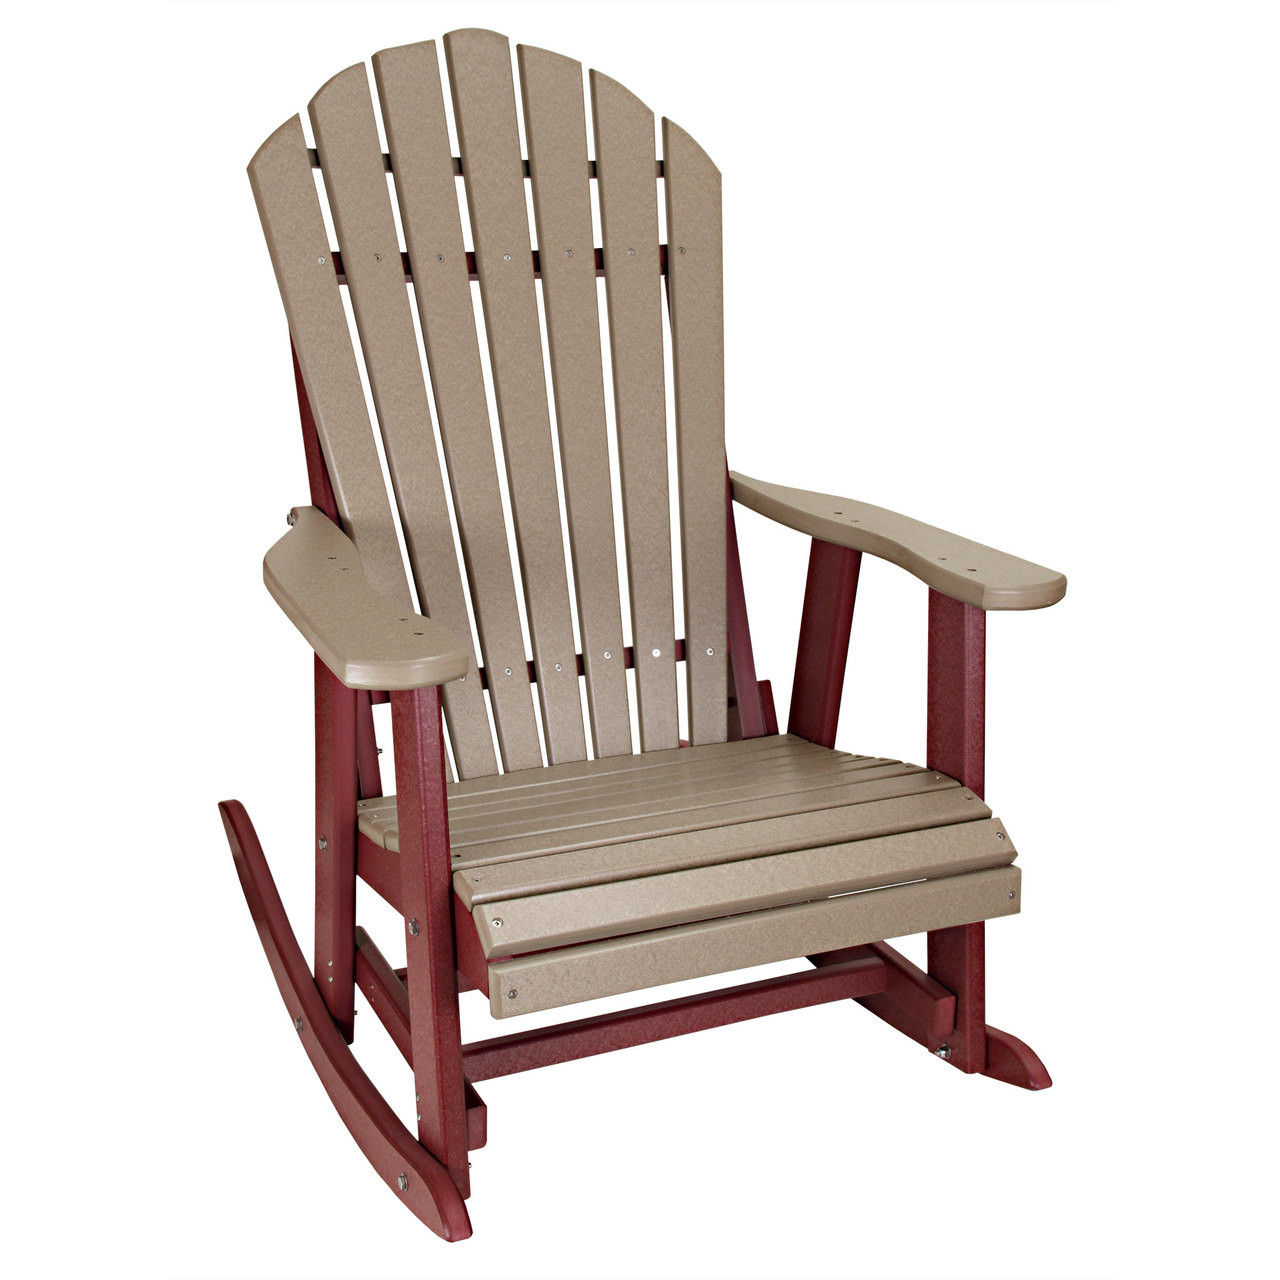 Fantastic Outer Banks Deluxe Poly Lumber Adirondack Rocking Chair Machost Co Dining Chair Design Ideas Machostcouk